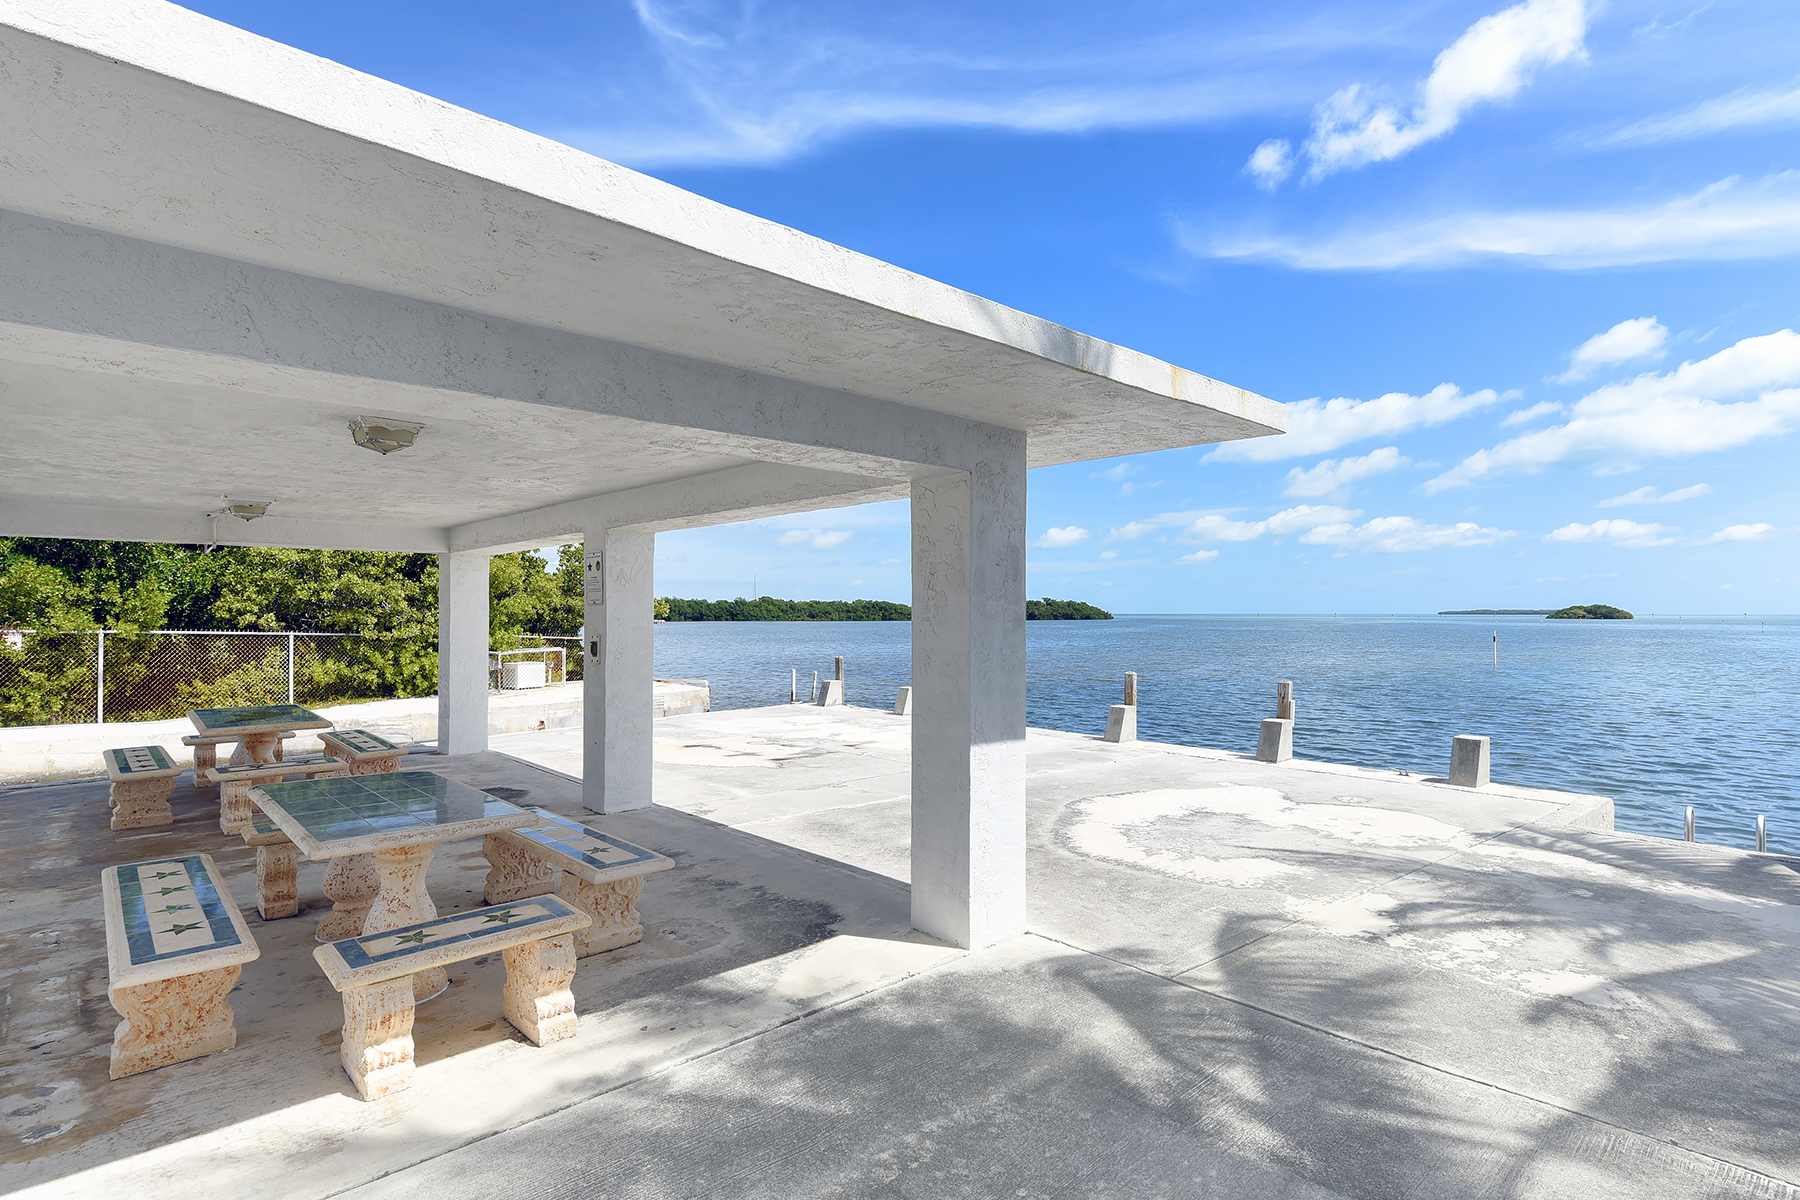 Additional photo for property listing at Sweeping Ocean Views 208 Plantation Shores Drive Islamorada, フロリダ 33070 アメリカ合衆国